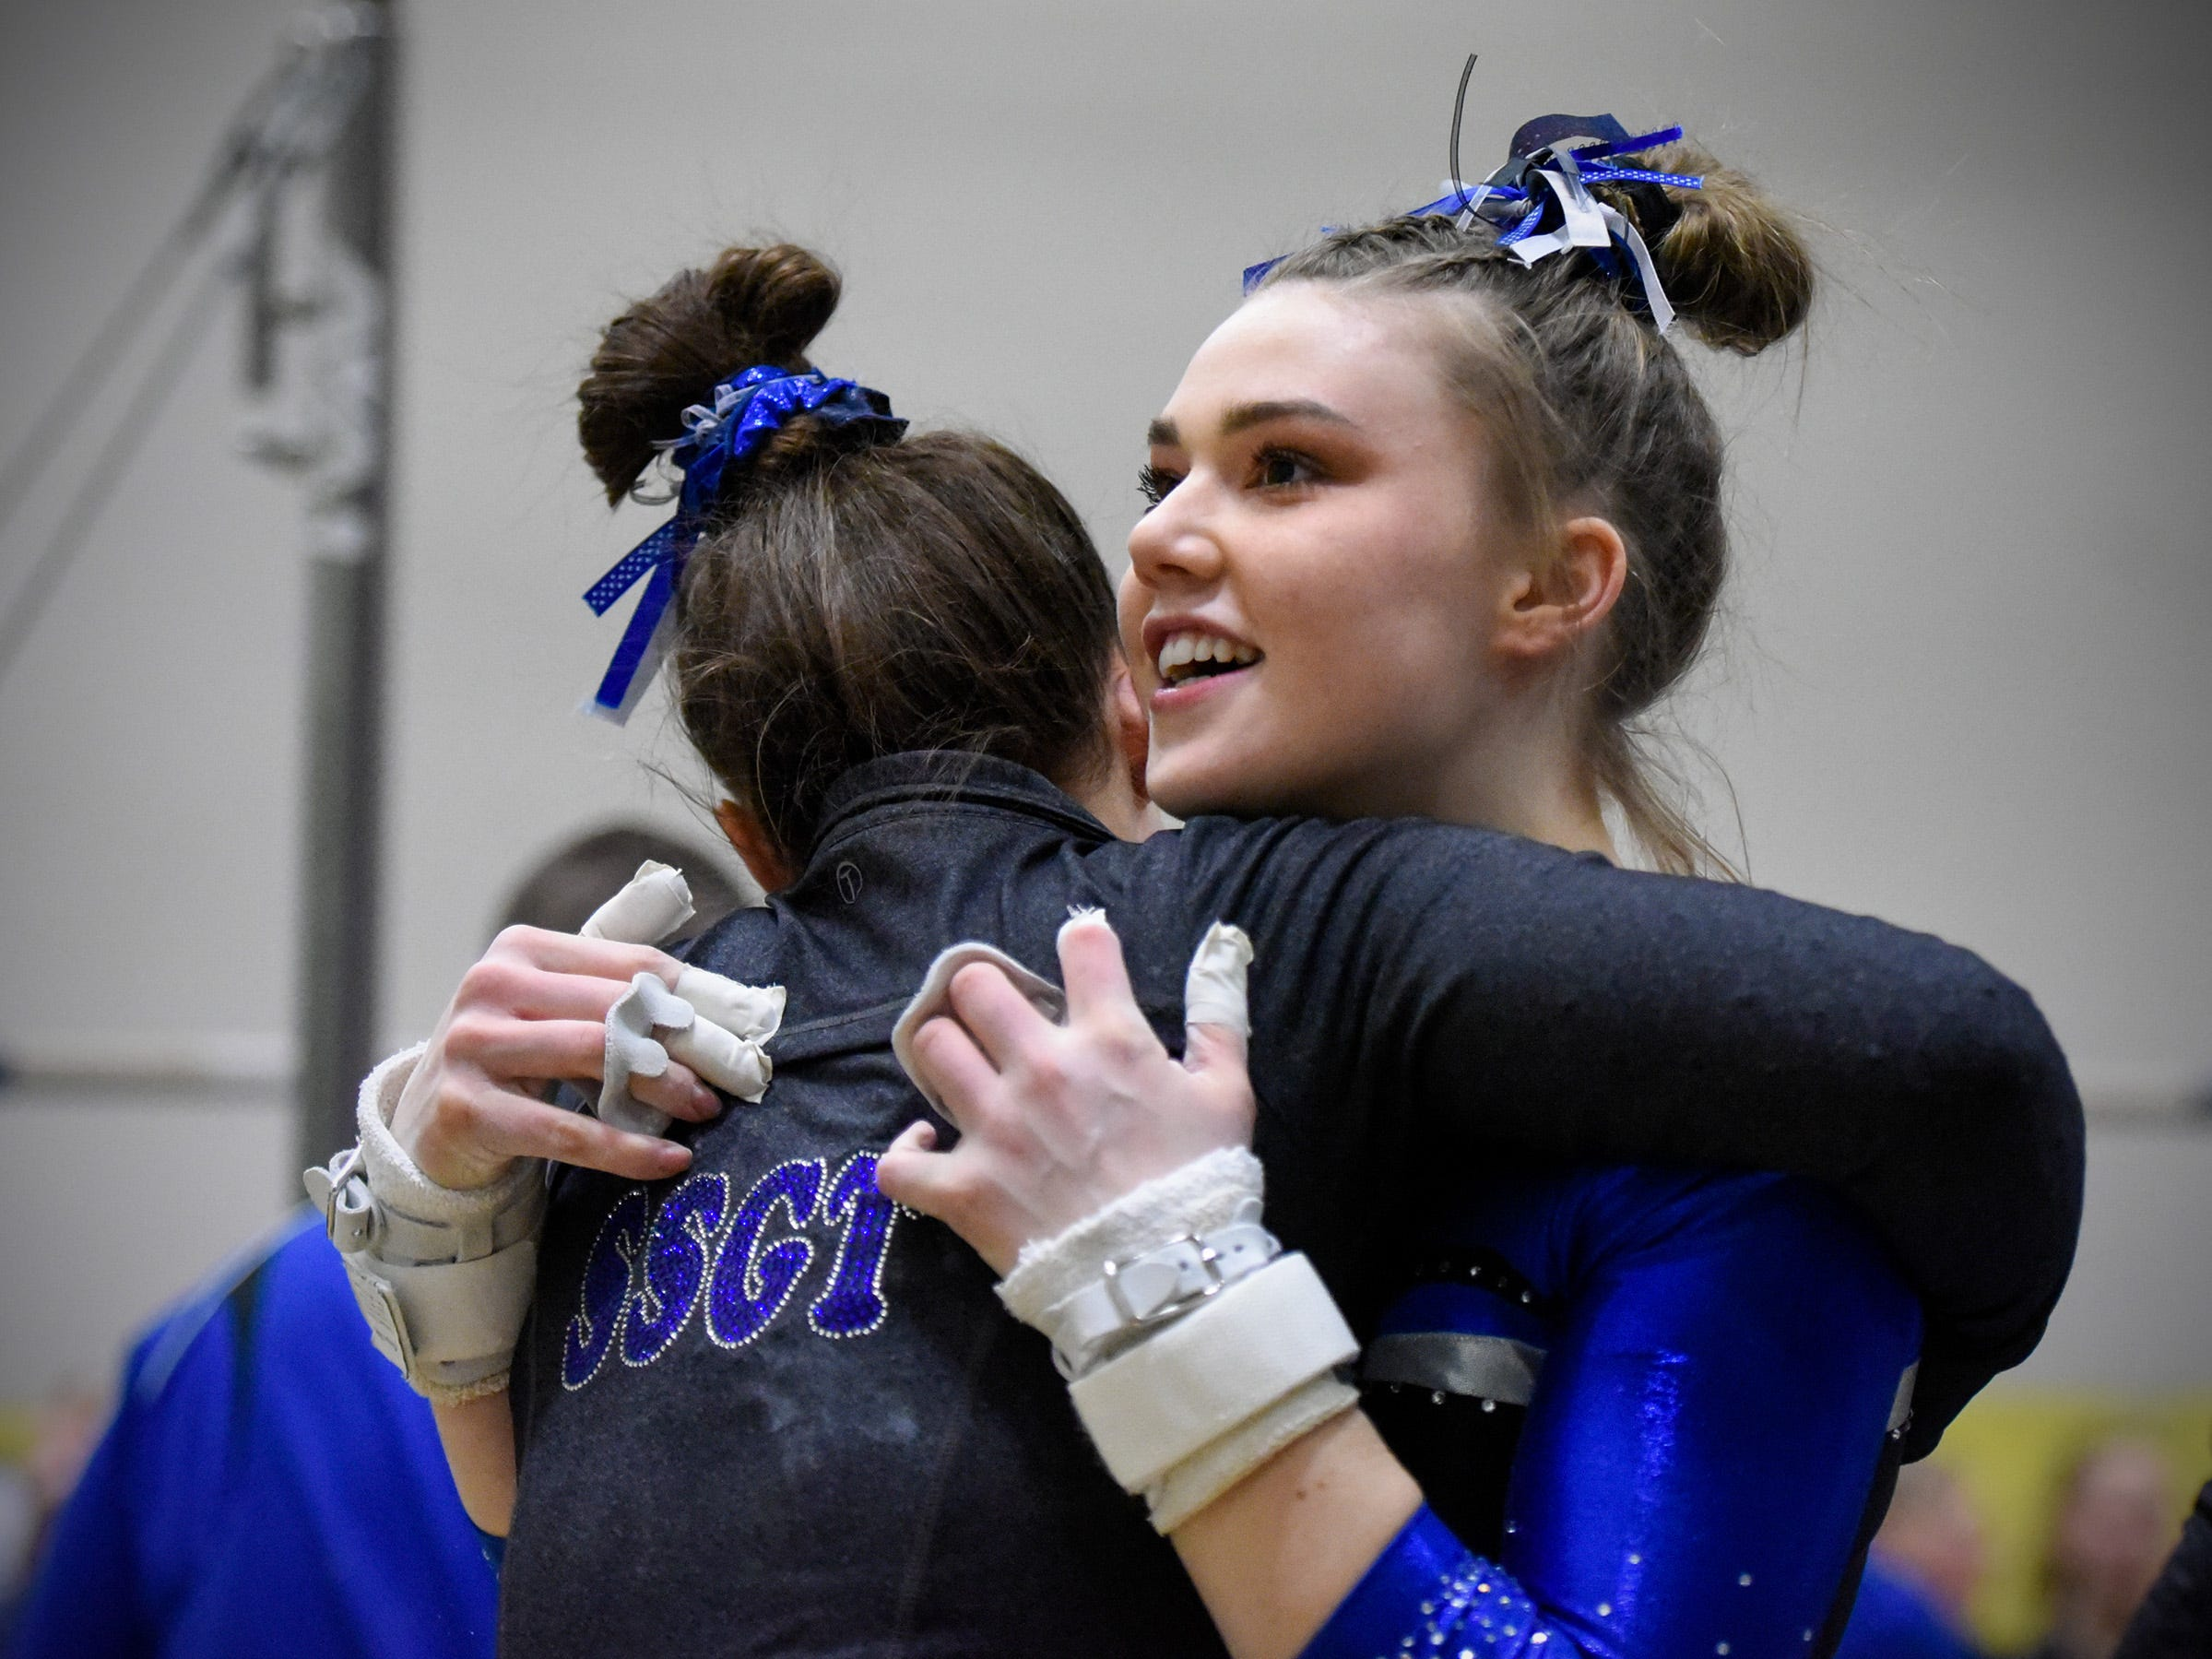 Sartell's Abigail Weber gets a hug from a teammate after her bar routine Thursday, Jan. 3, at the Sauk Rapids-Rice High School.